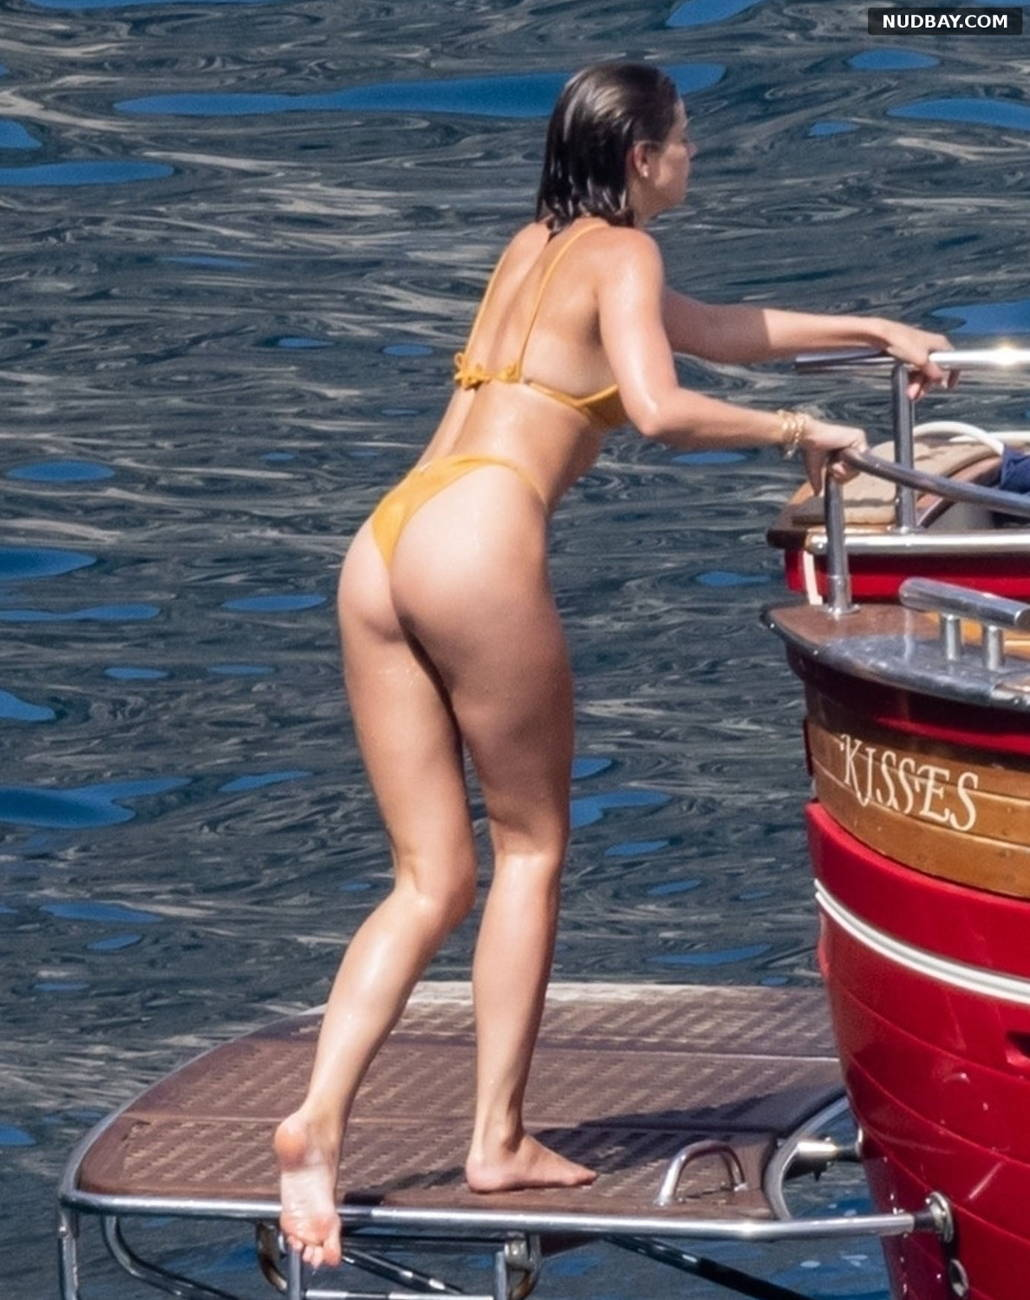 Taylor Marie Hill Ass on vacation in Positano Jun 28 2021